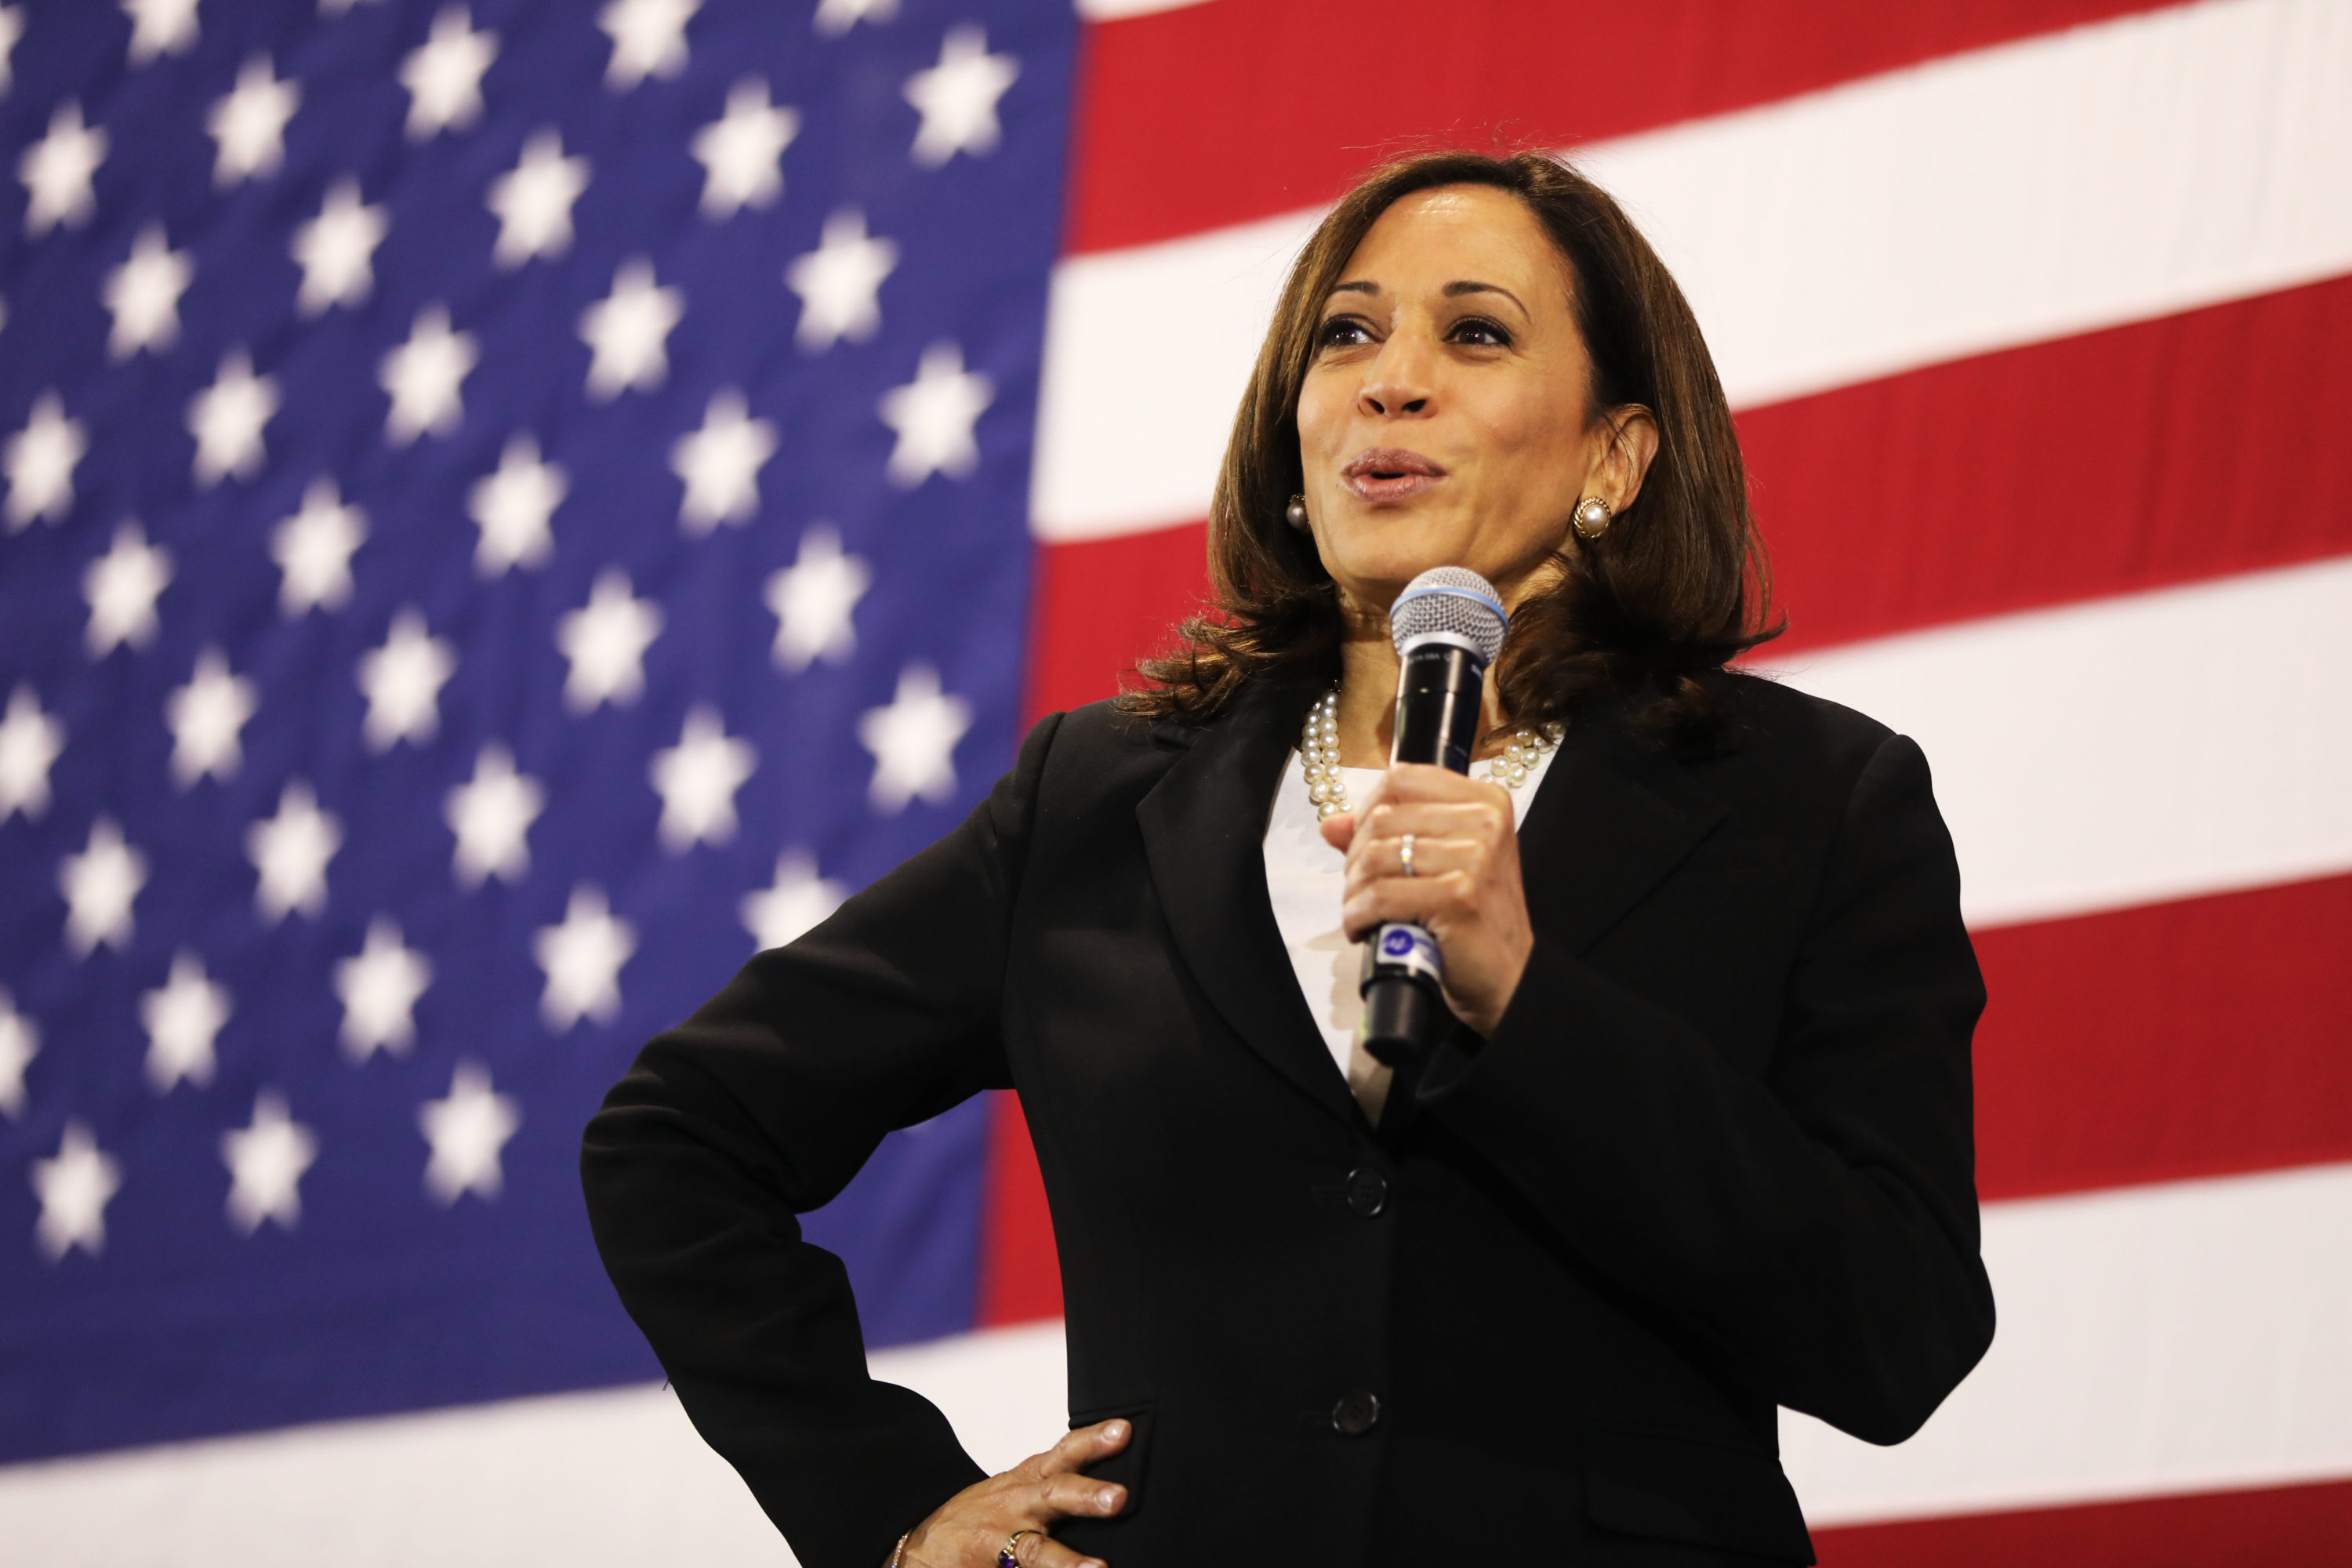 Kamala Harris Vp Bid Sparks Debate About Racial Identity Here Now